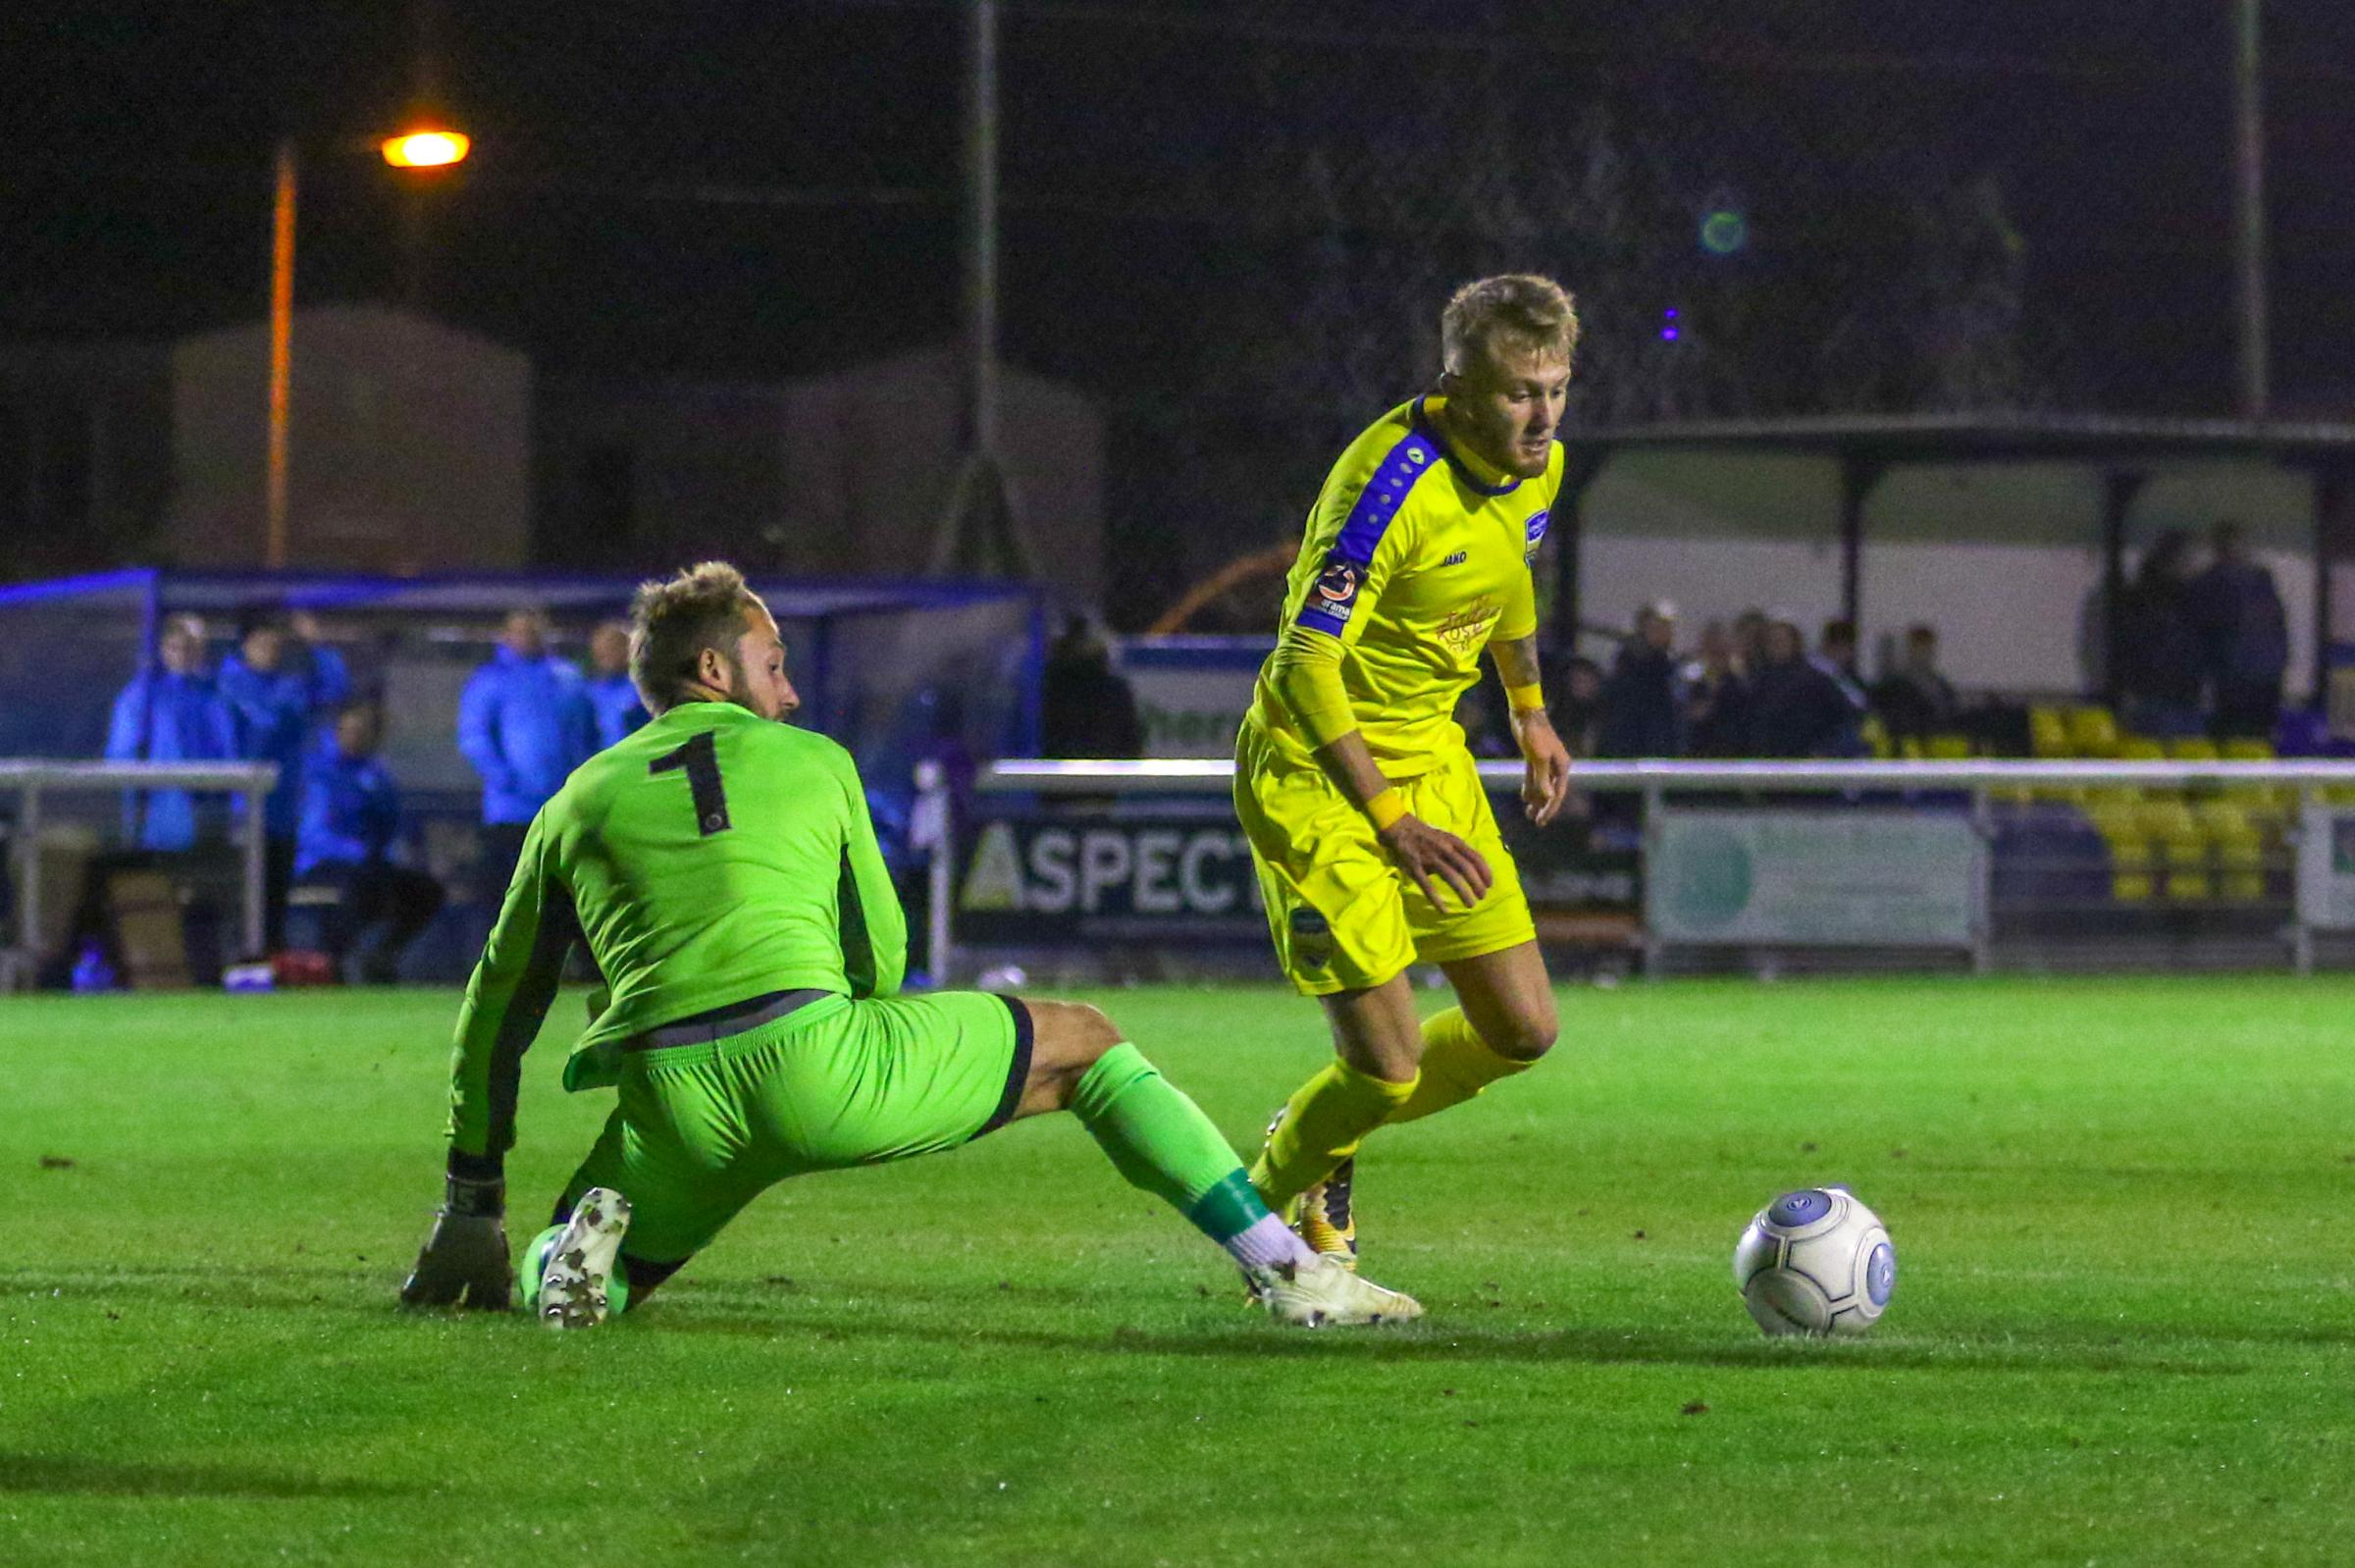 On target - Liam Nash continues to impress following his loan move from Gillingham Picture: PAUL RAFFETY